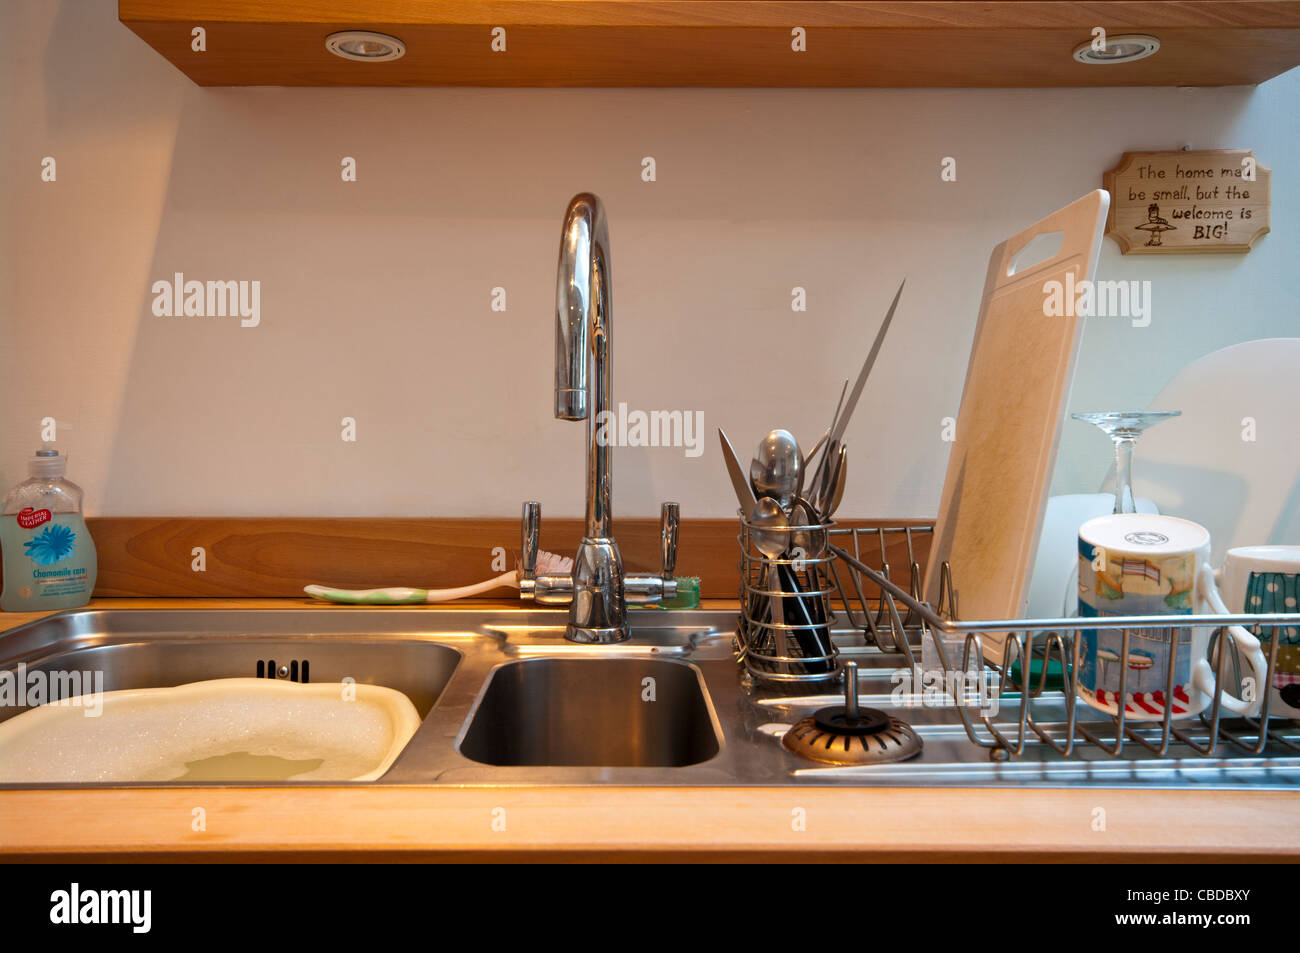 Kitchen Sink Draining Board Washing Stock Photos & Kitchen Sink ...